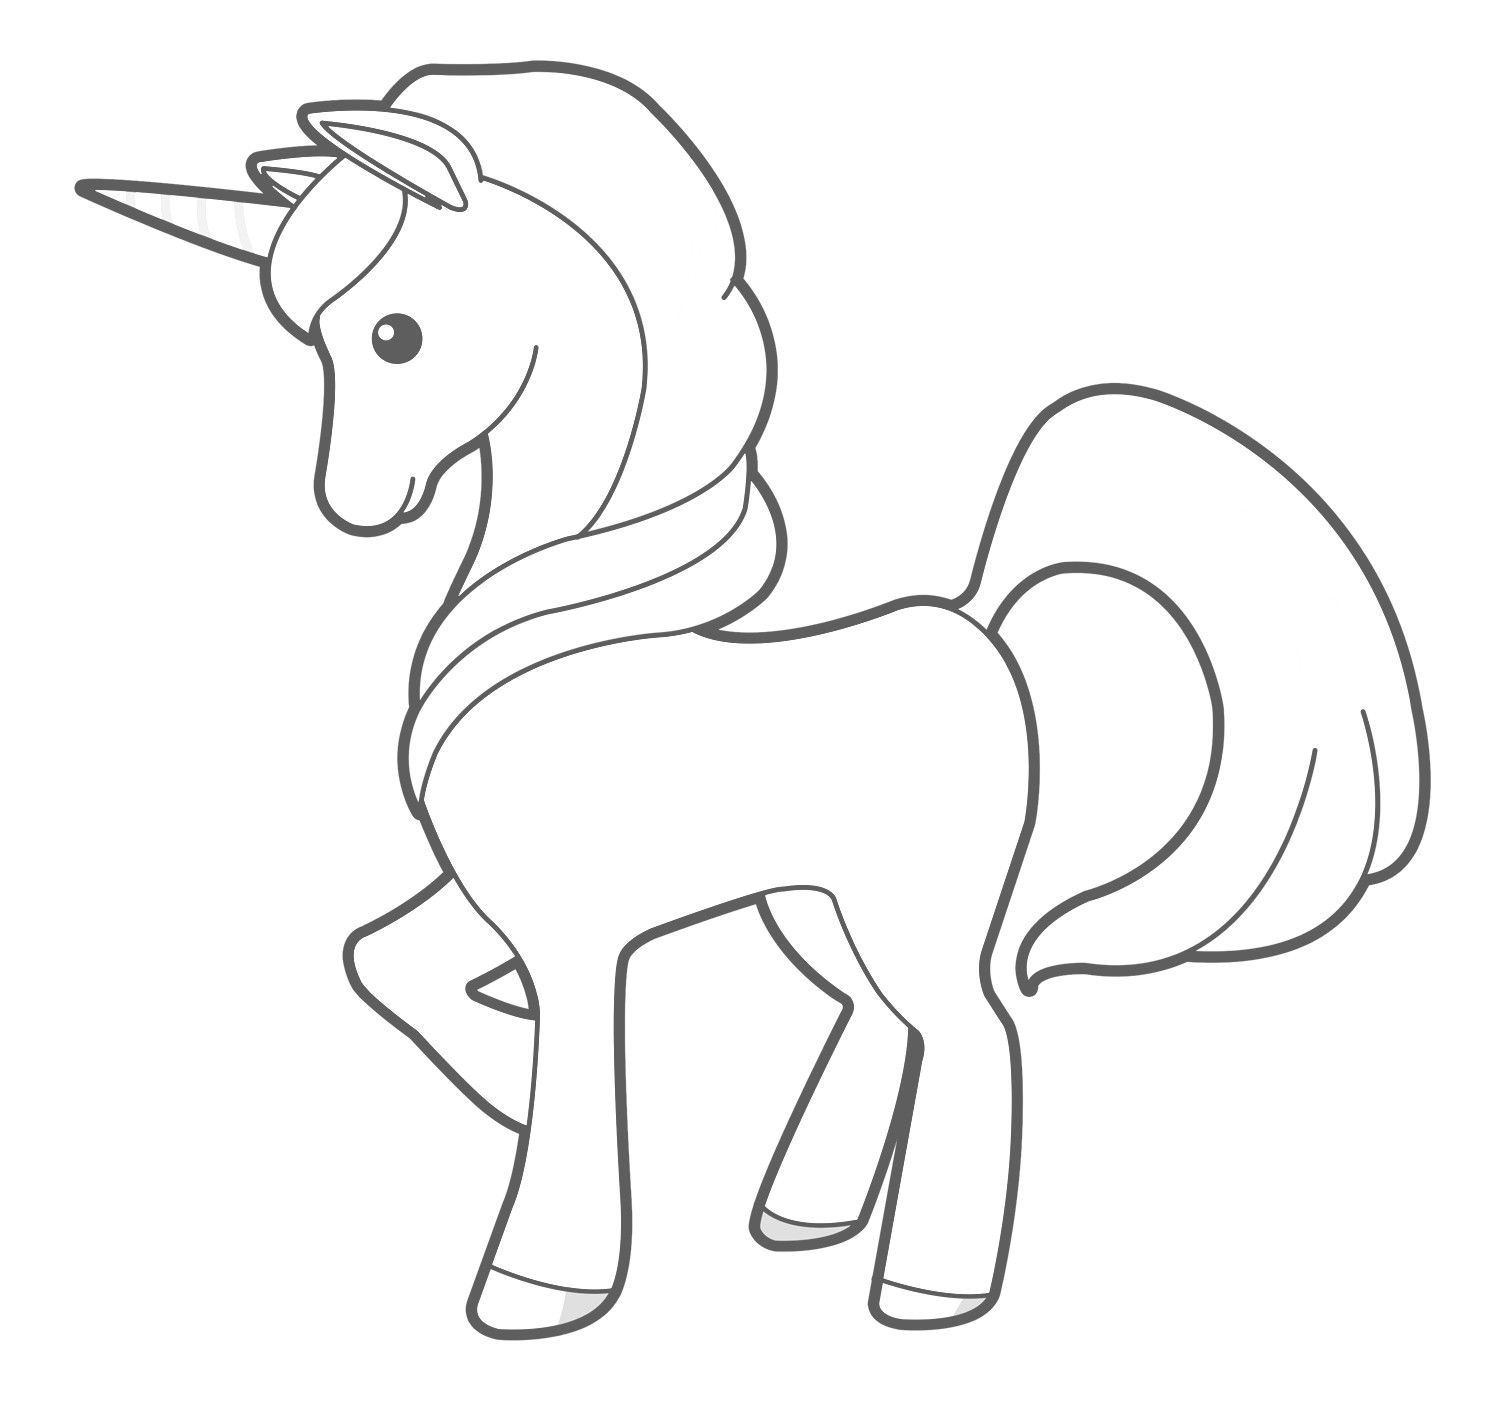 Unicorn Coloring Page Unicorn Coloring Pages Coloring Pages Drawings